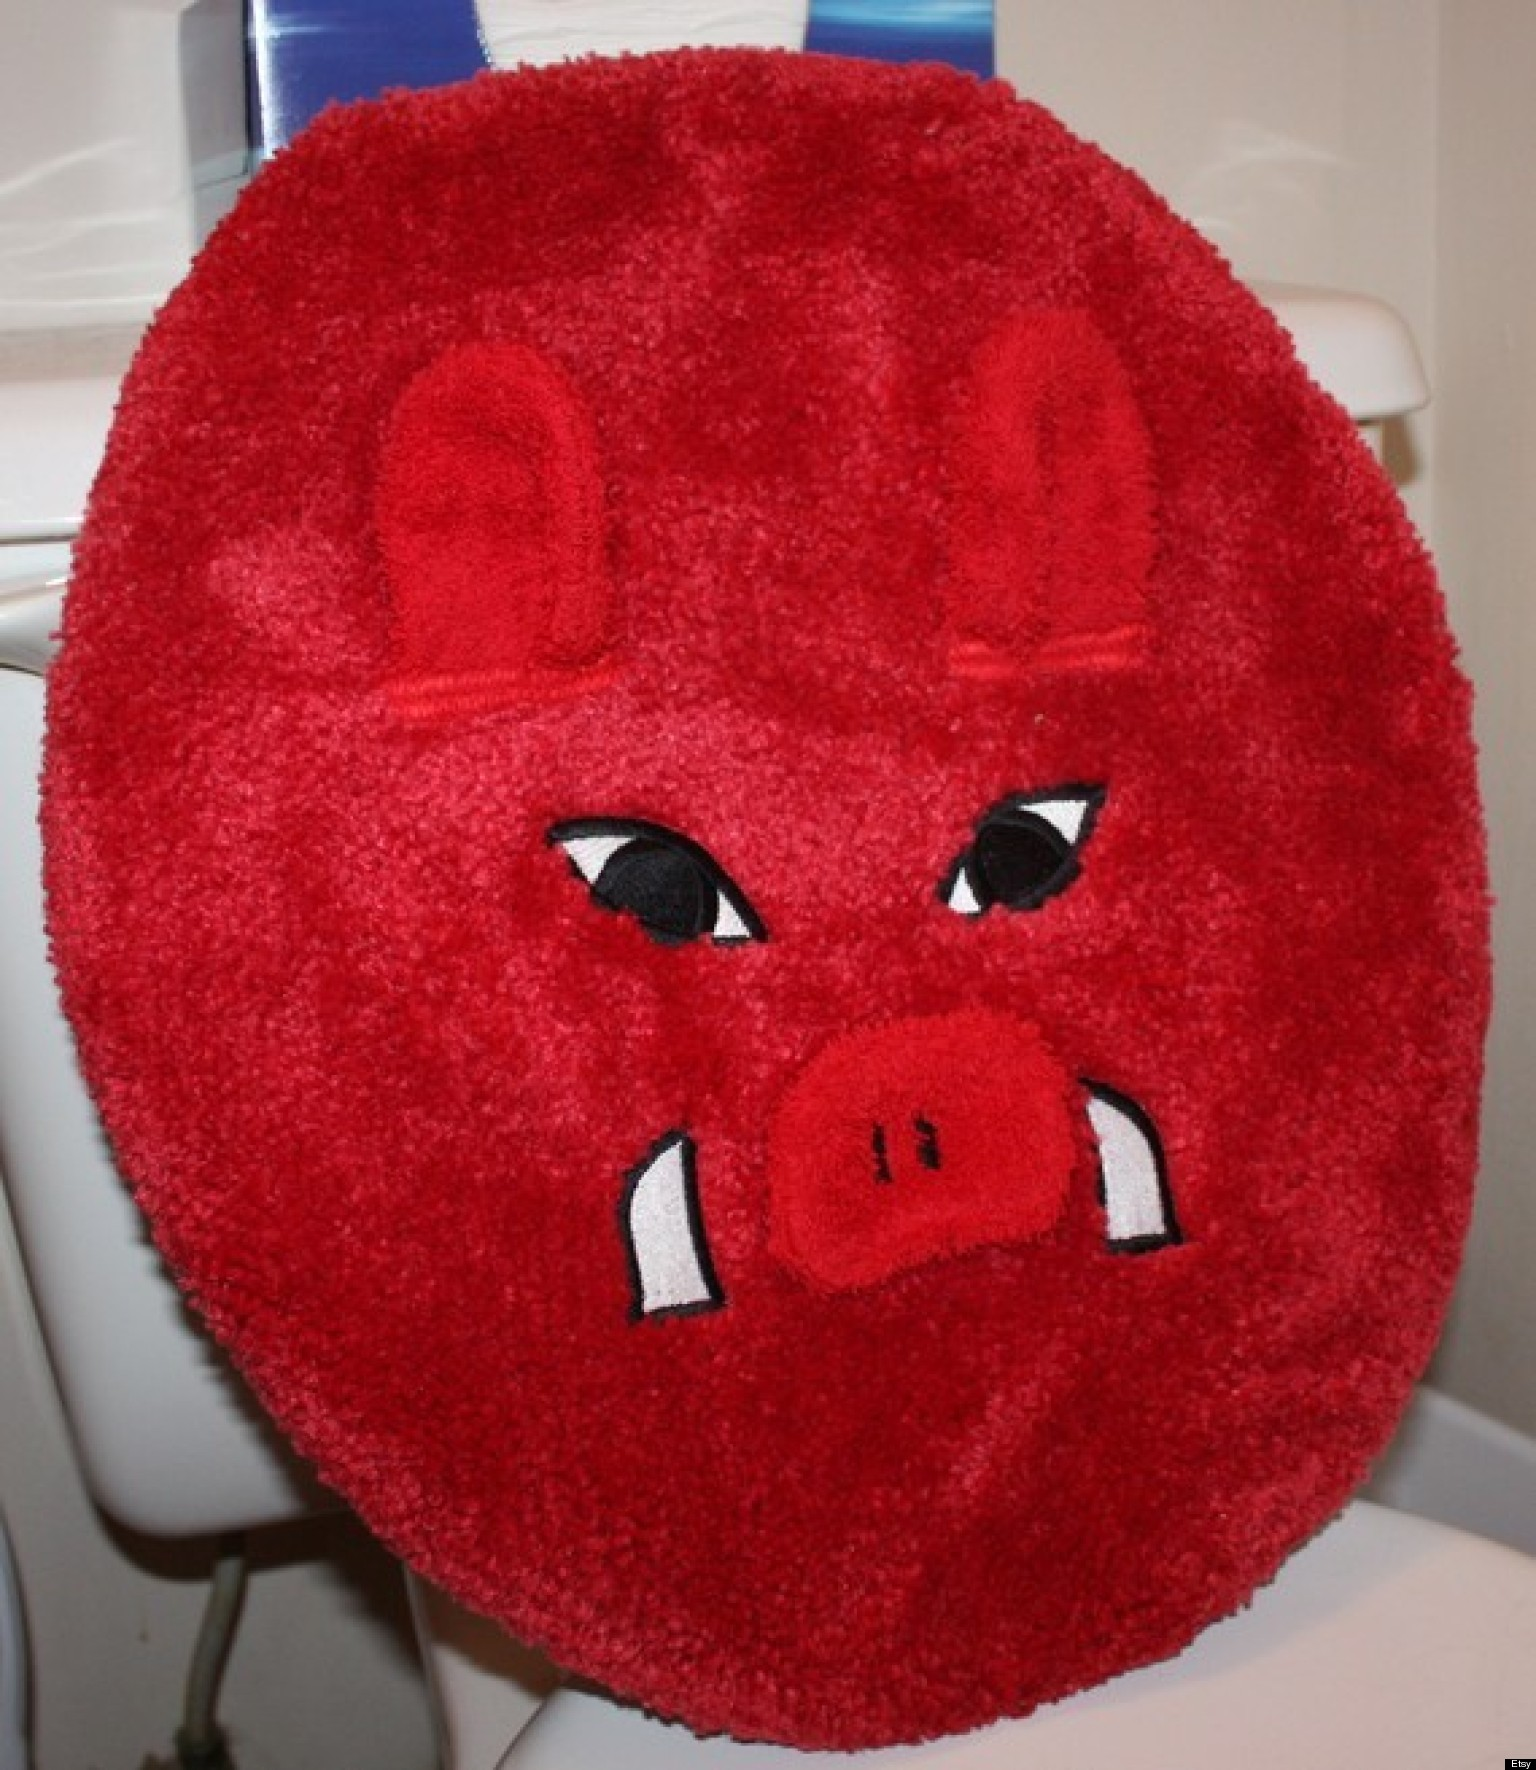 25 Ridiculous Toilet Seat Covers (PHOTOS) | HuffPost